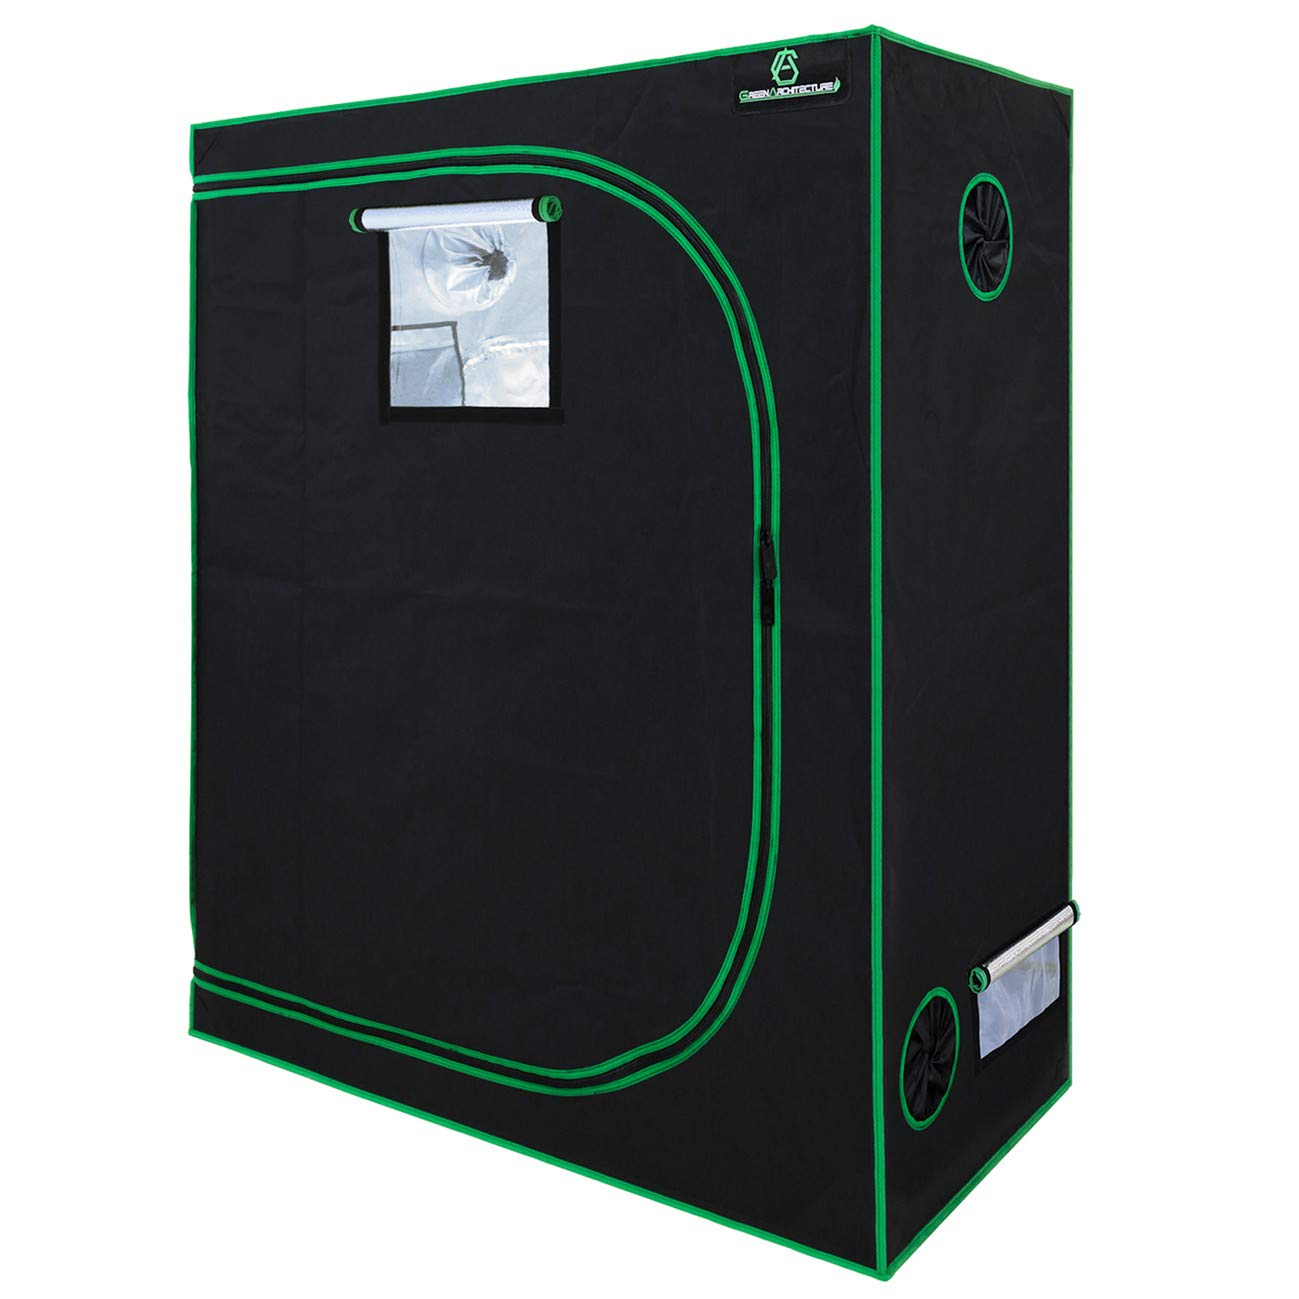 GA 48 x24 x60 Reflective Mylar Hydroponic Grow Tent with Observation Window and Waterproof Floor Tray for Indoor Plant Growing 4×2 4.5×4.5 4×2